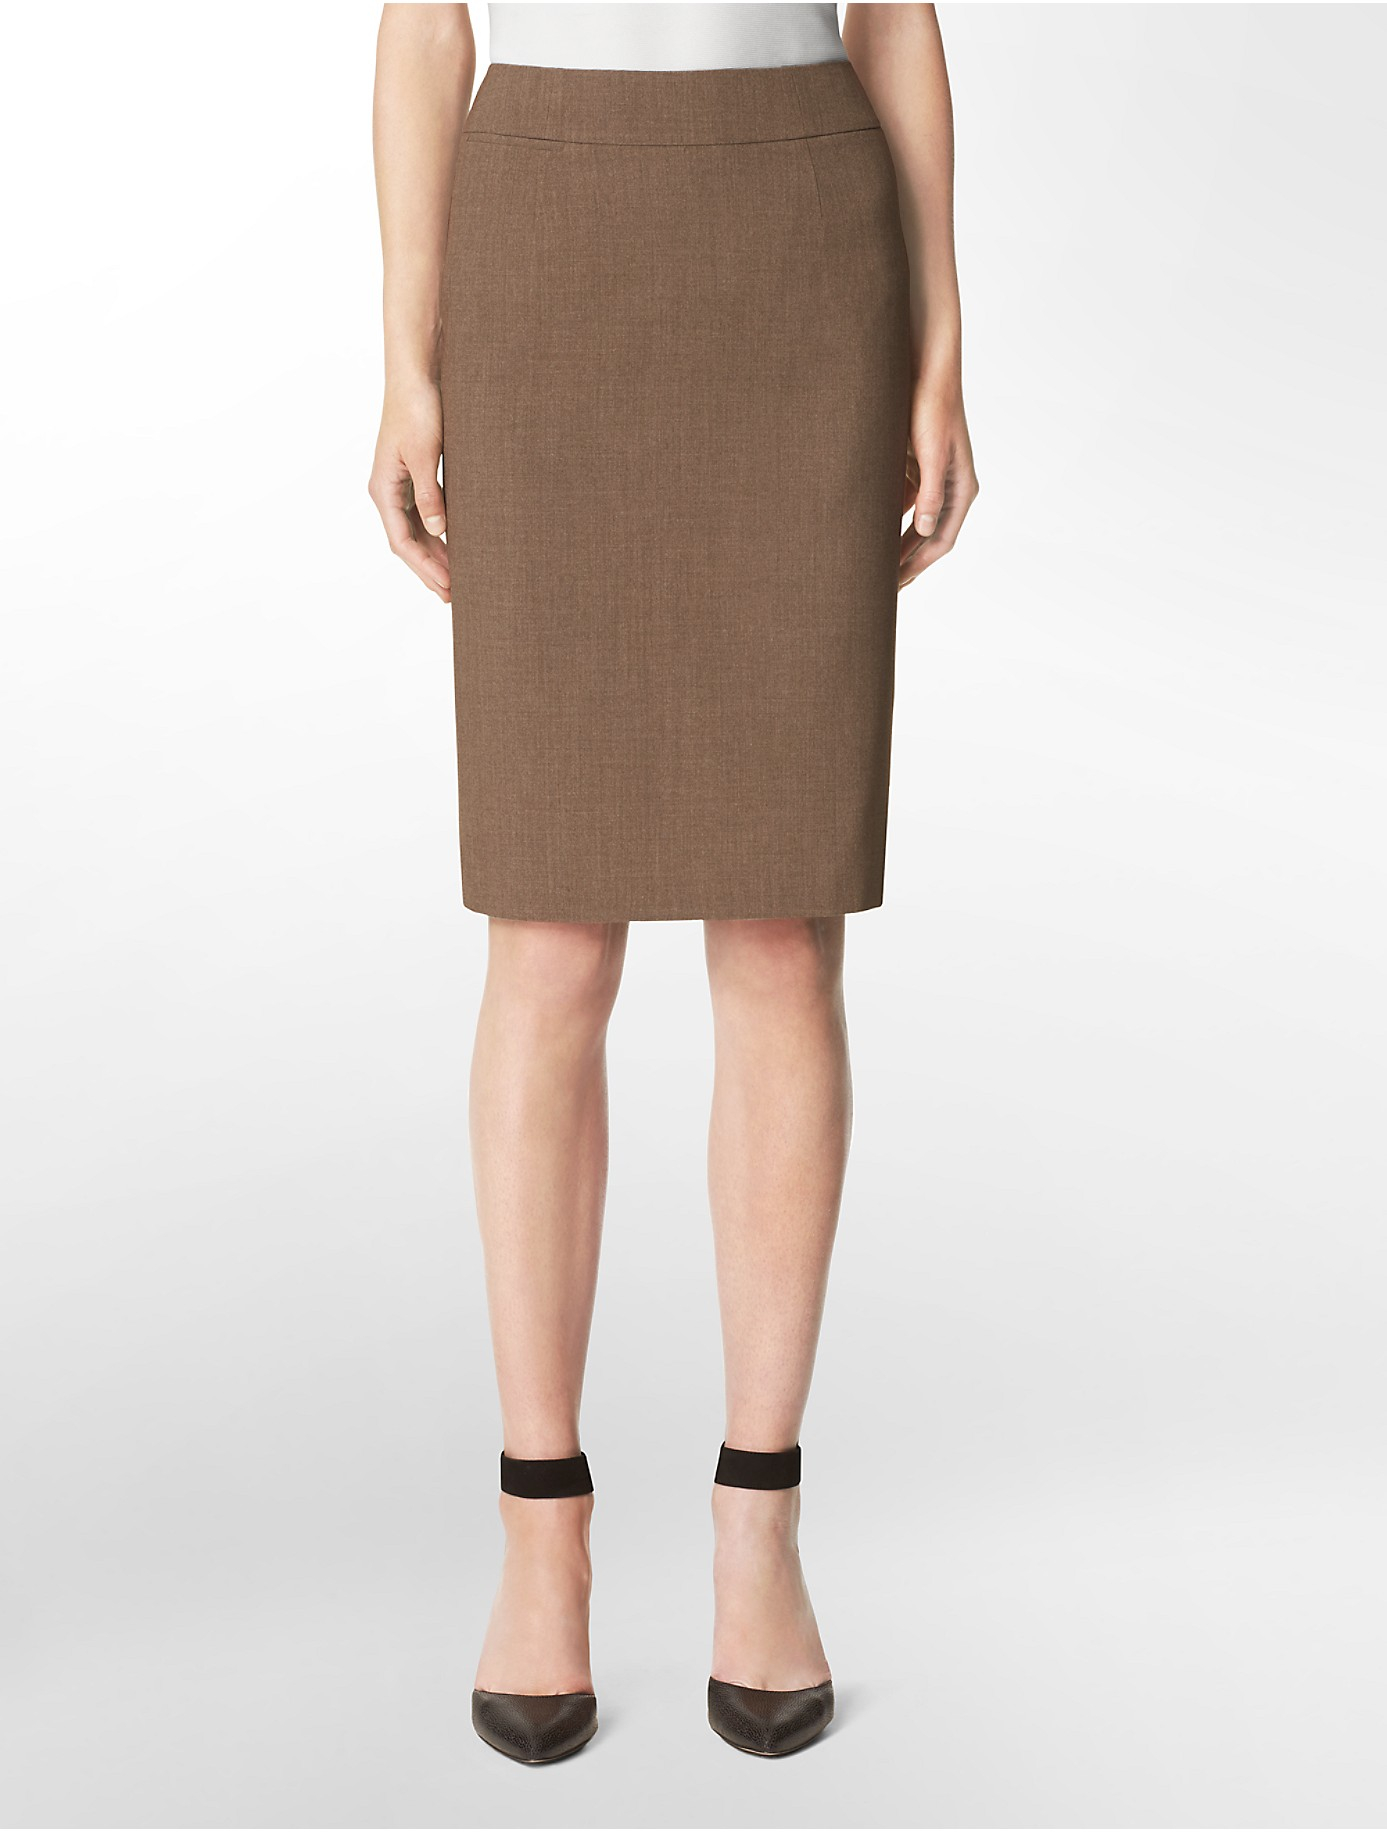 Calvin klein Heather Taupe Pencil Suit Skirt in Brown | Lyst